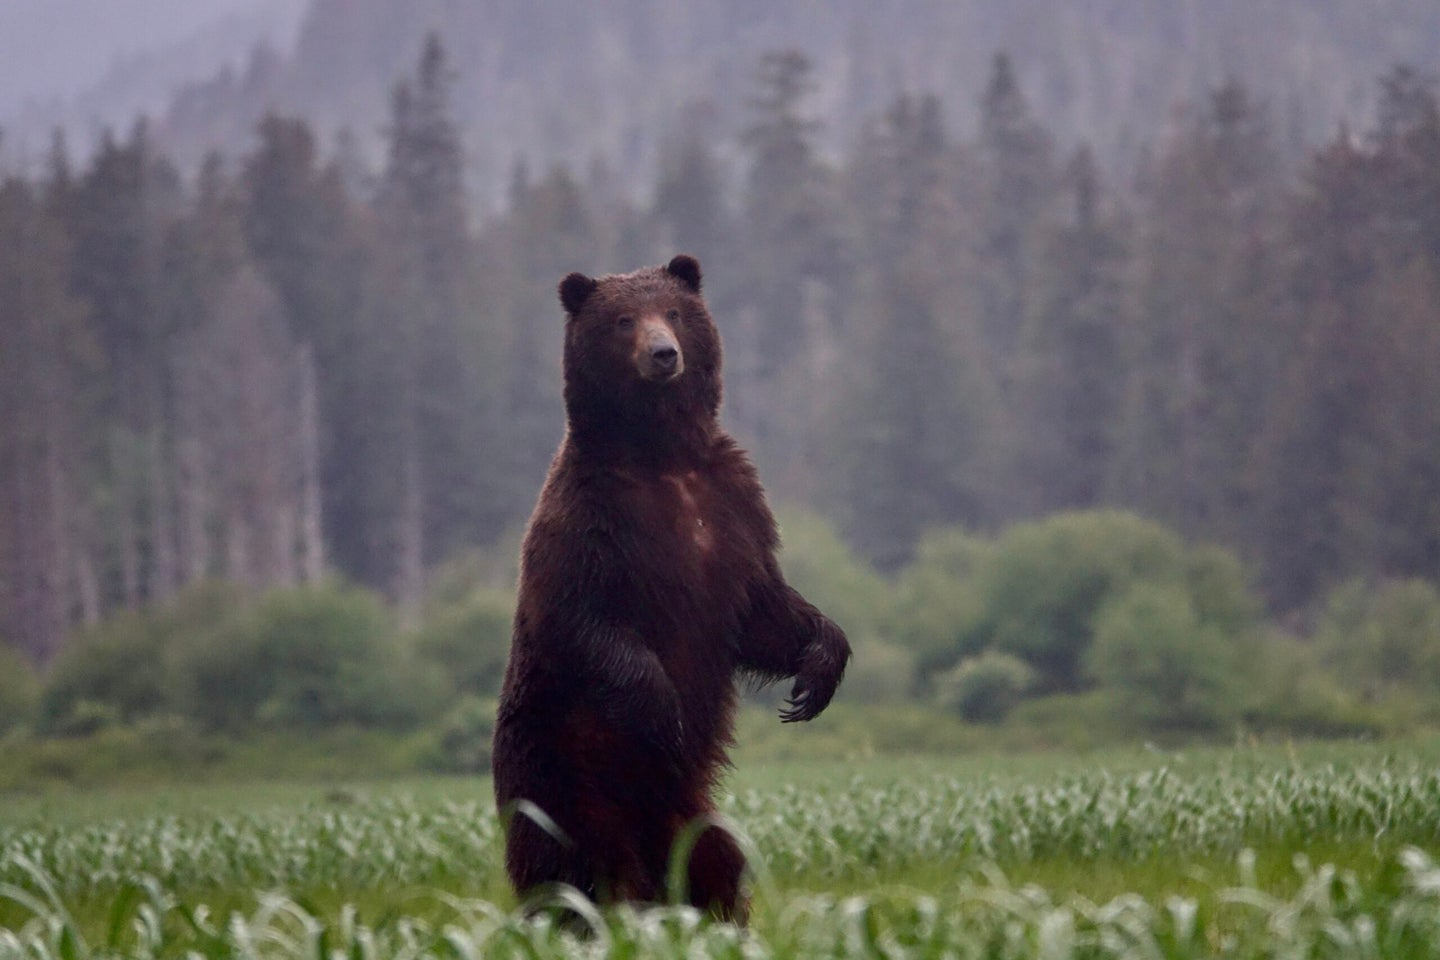 An Alaskan brown bear stands on his hind legs in an open grassy field near a forest.